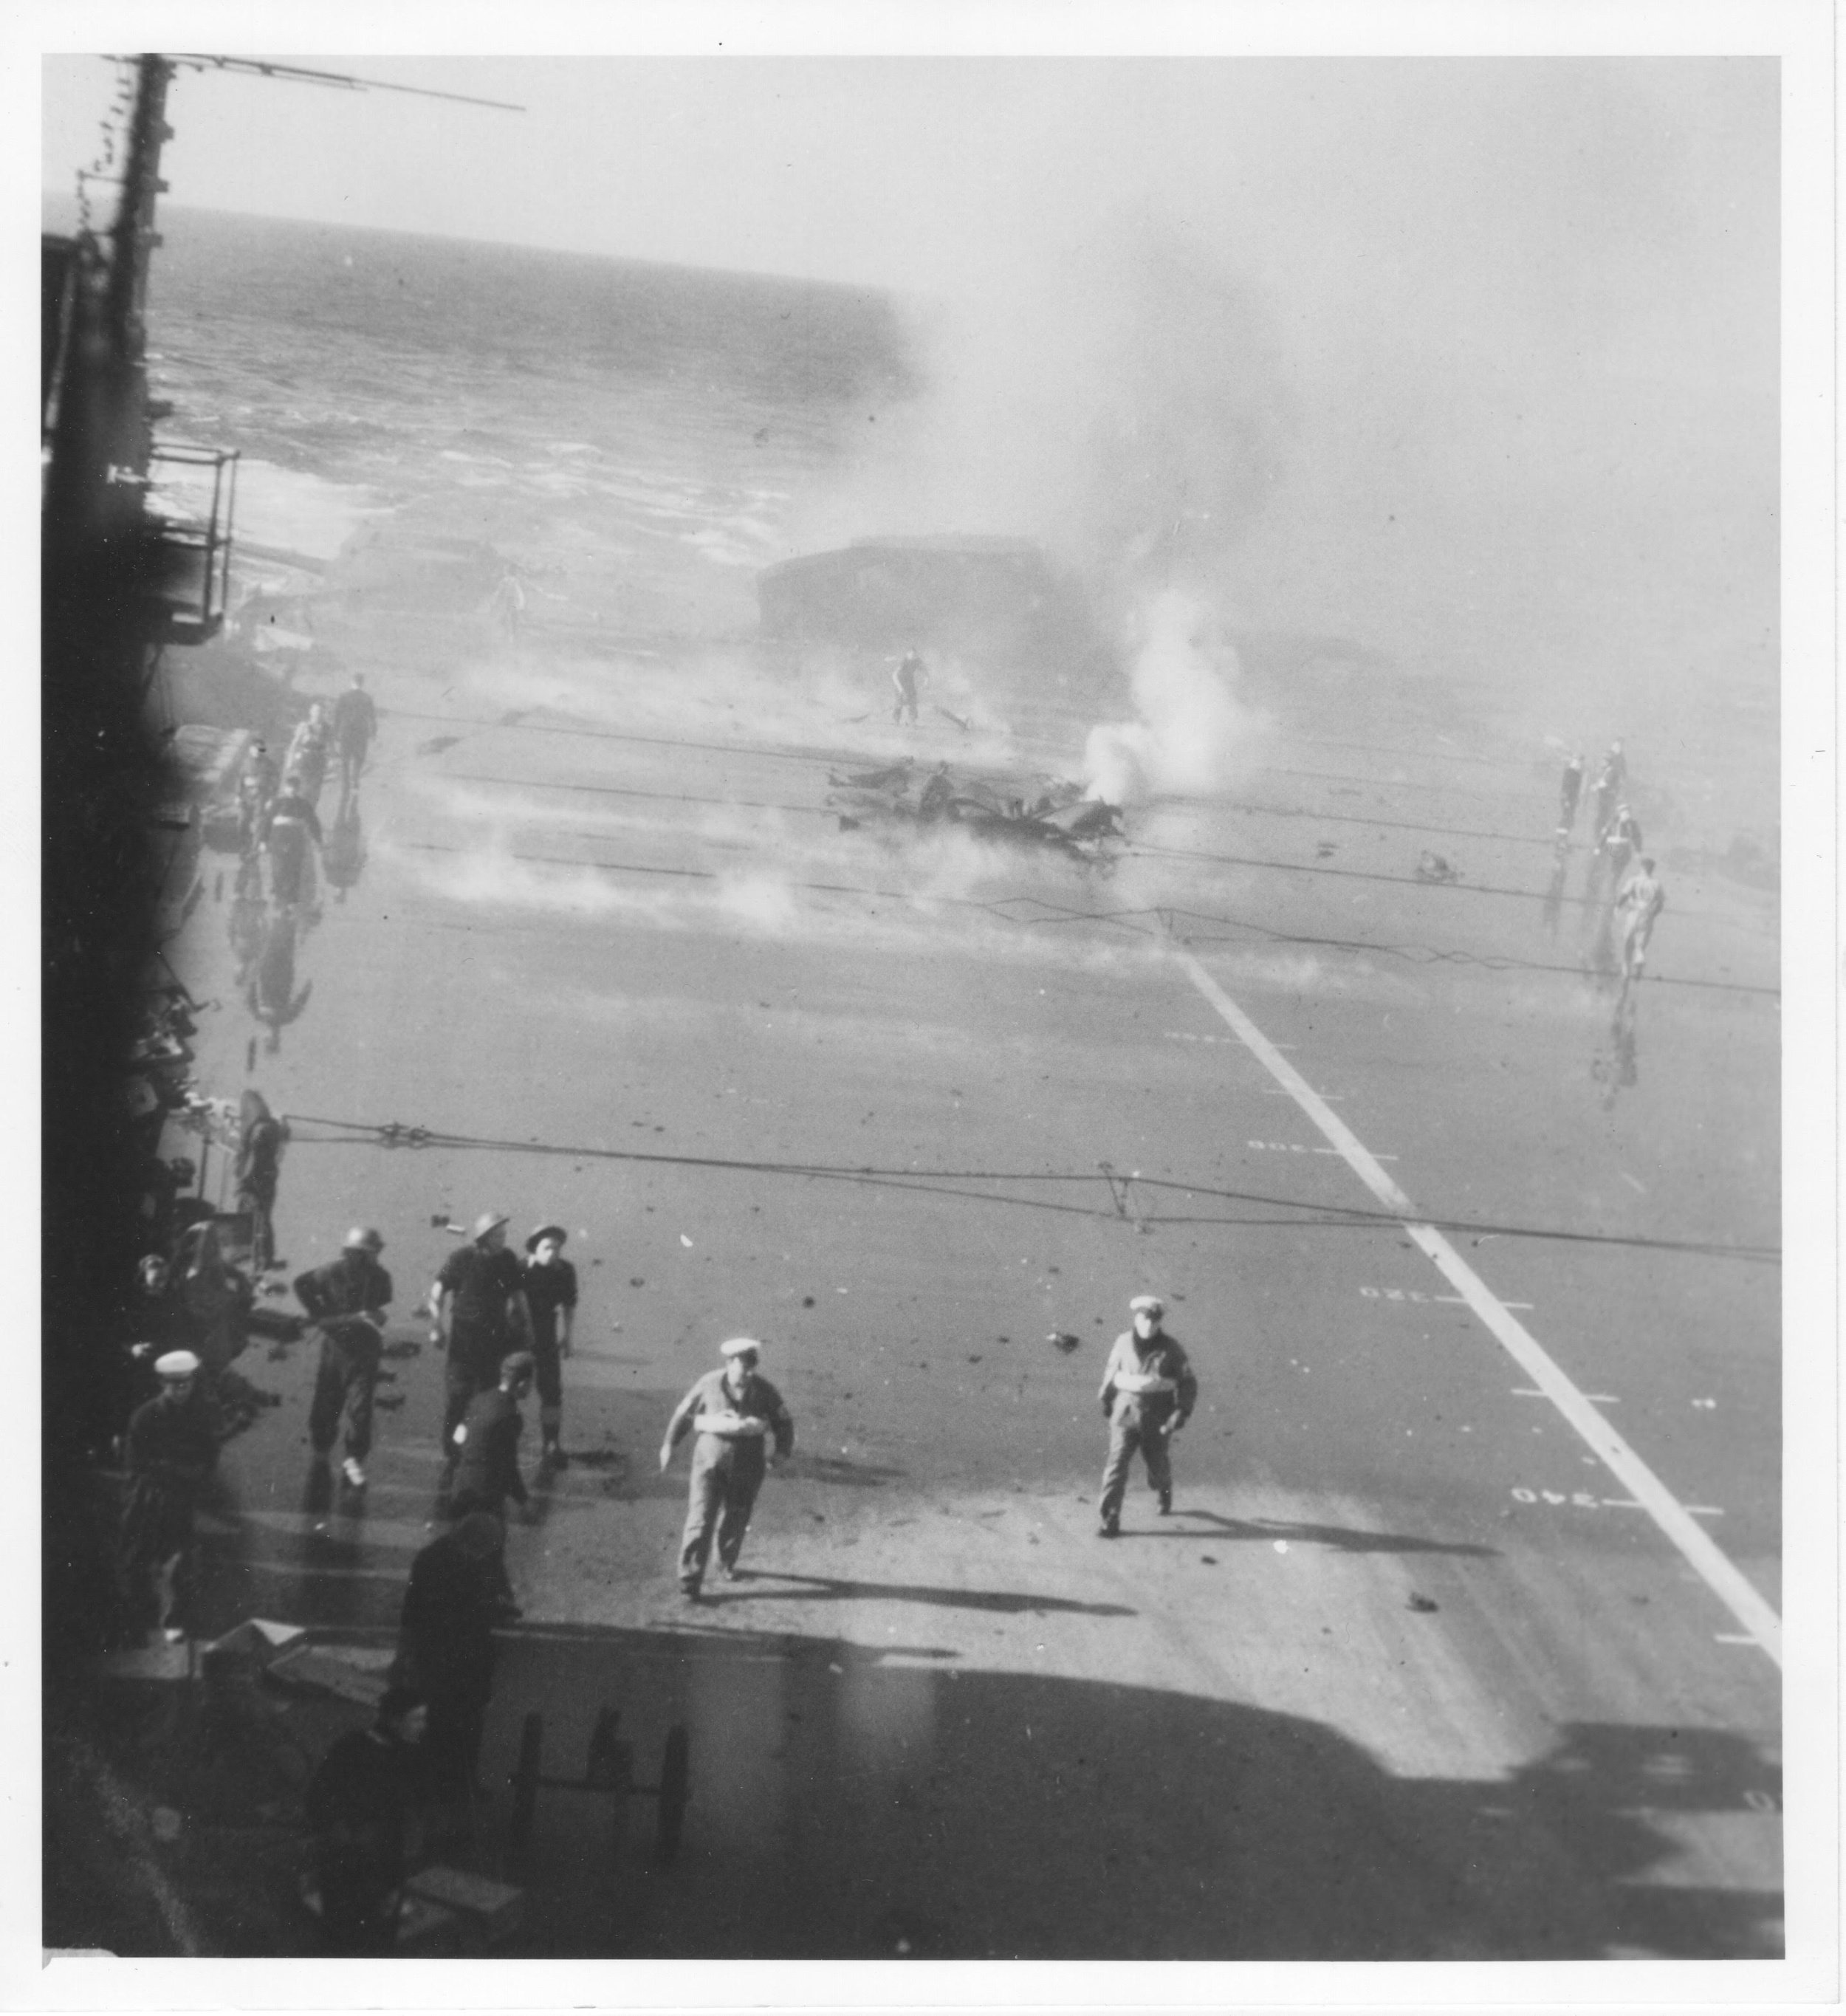 Puncture wound ... A snake of smoke curls out of the 19-22in hole in the 3in armoured portion of Illustrious' flight deck as the hardened steel steams from the inferno in the hangar below. The toppled aft lift at the rear is also venting thick smoke and steam.  Click on the image for a full-resolution view. Picture courtesy John Clark